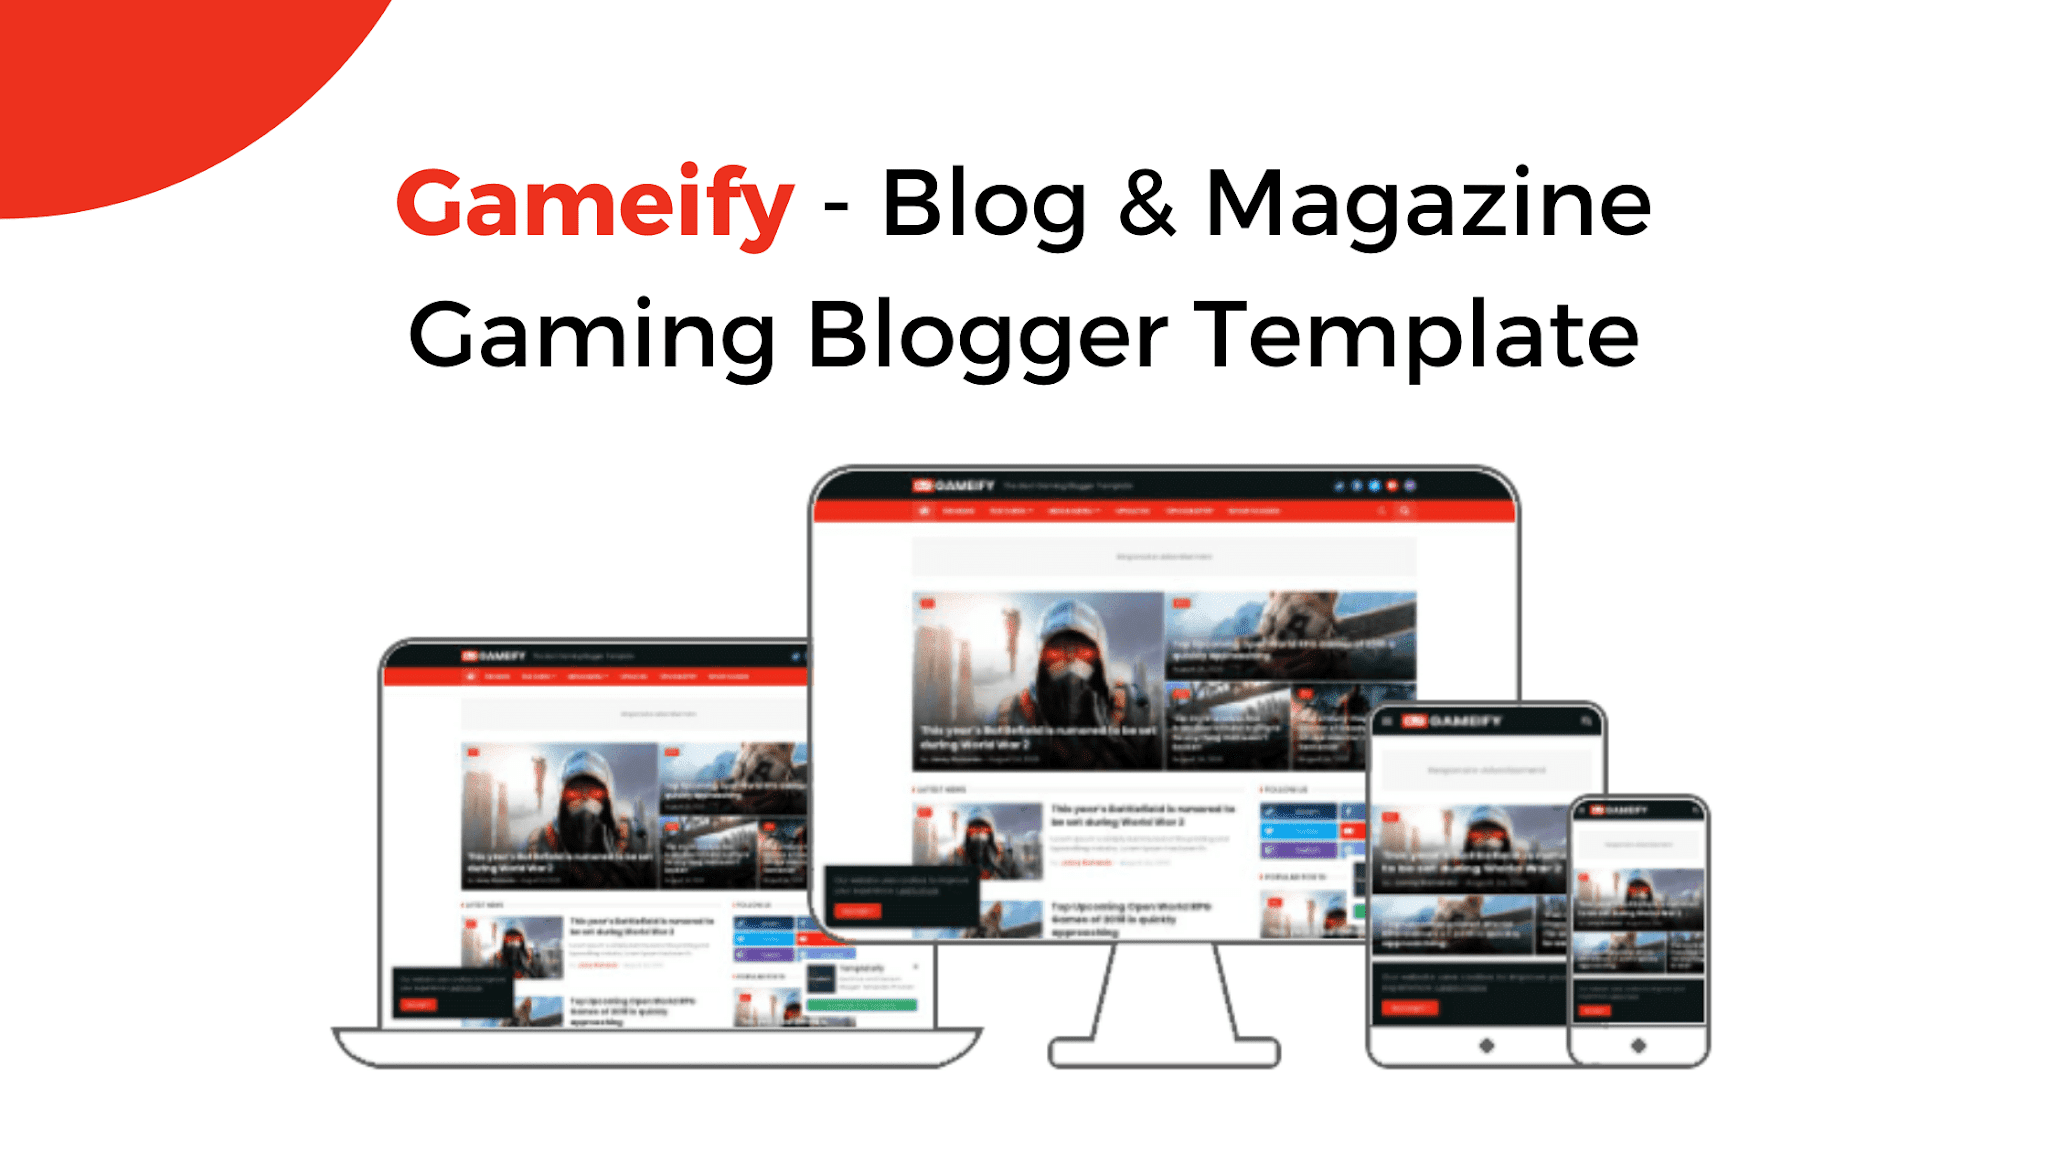 Gameify - Blog & Magazine Gaming Blogger Template